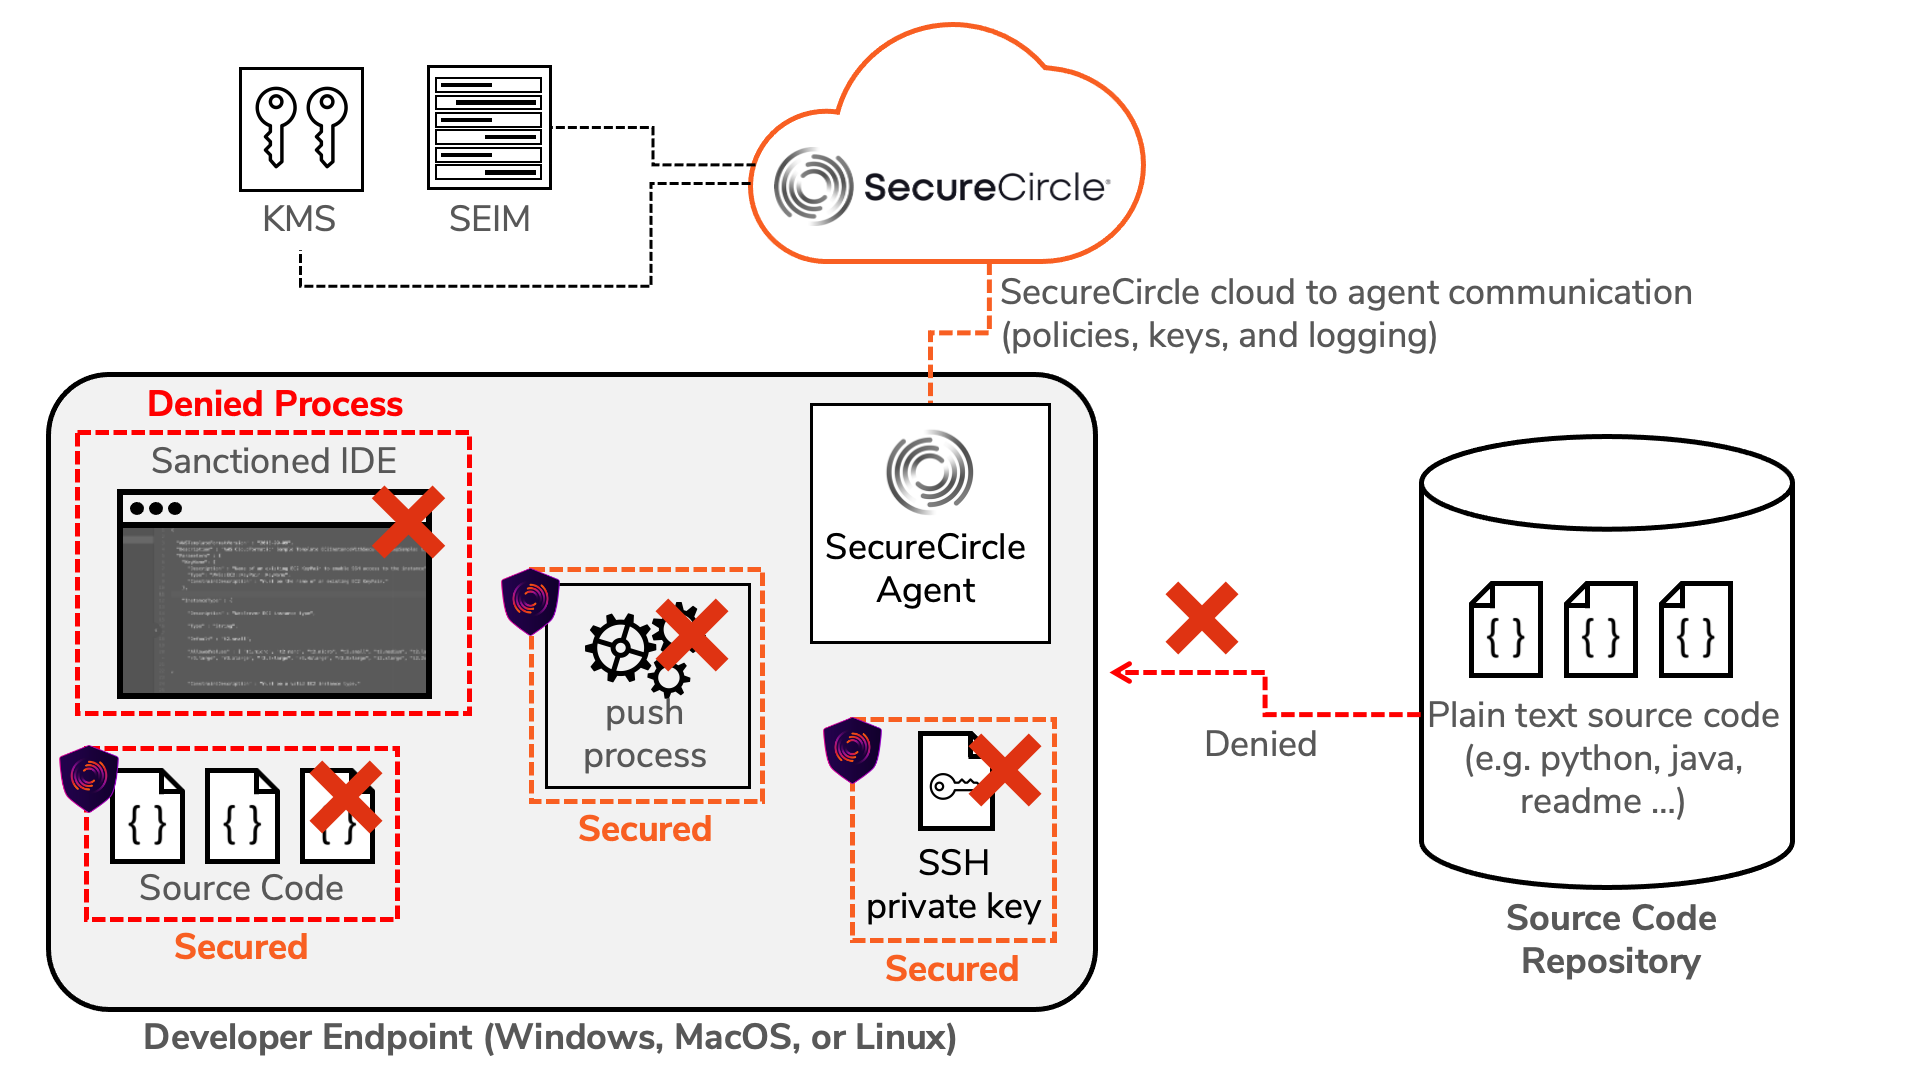 Securing Source Code on Endpoints